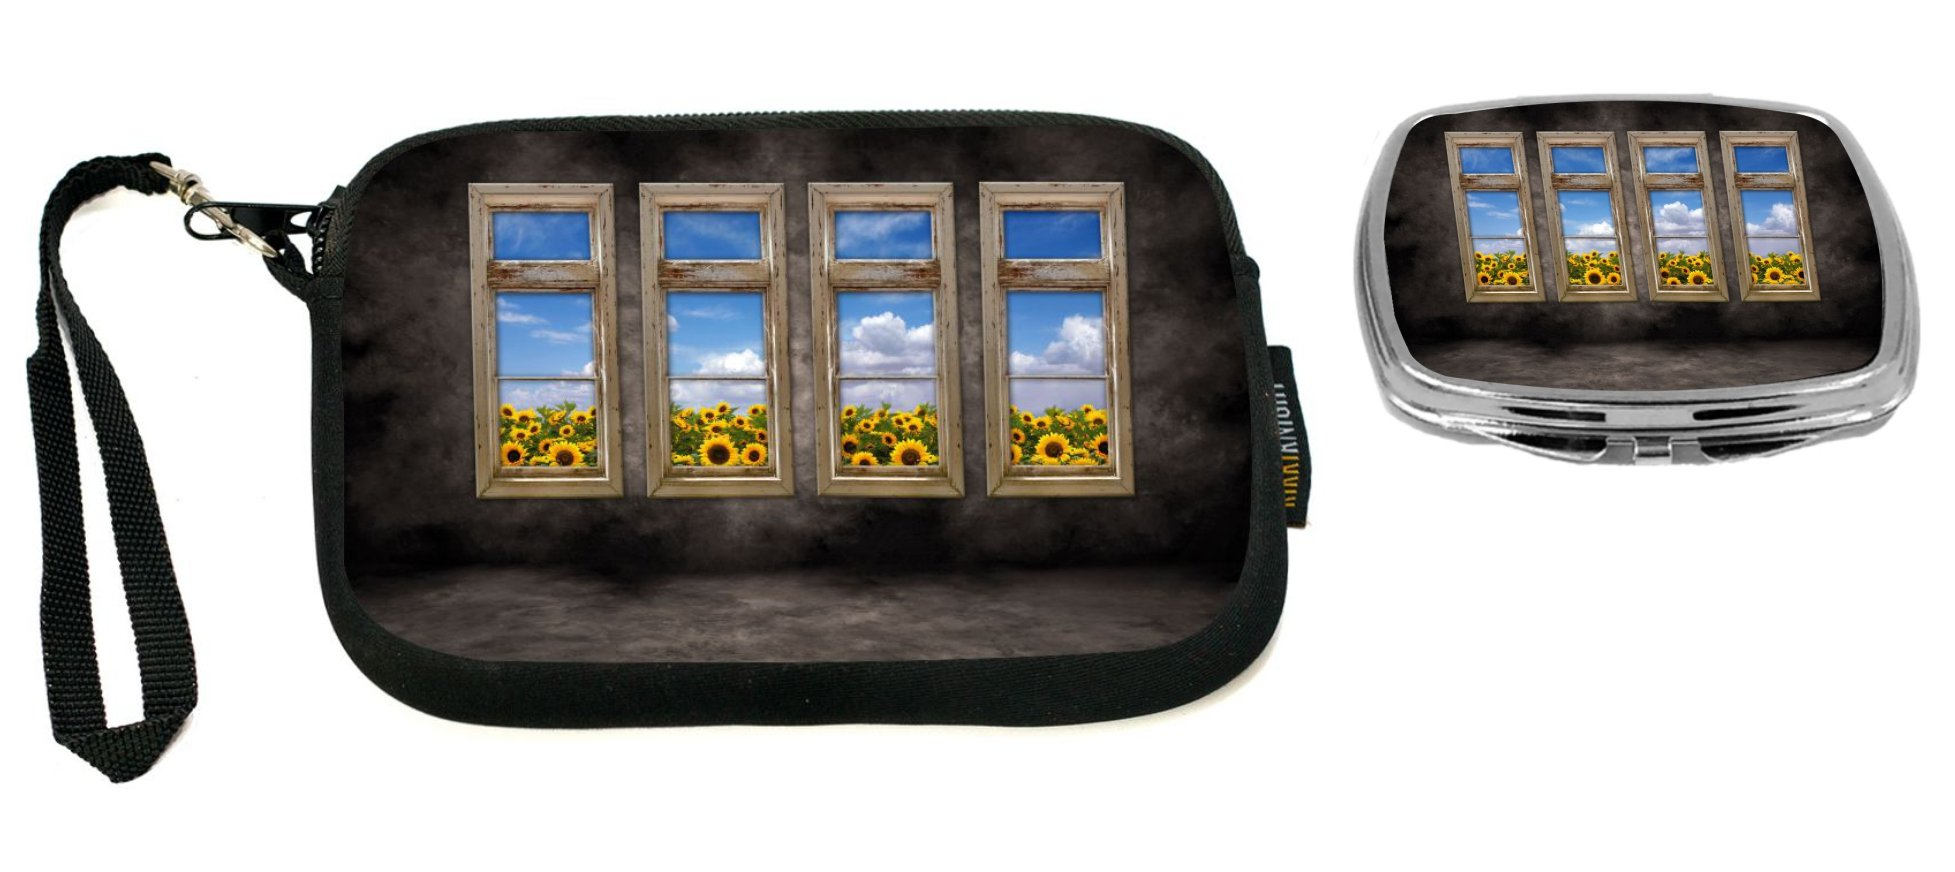 Rikki Knight Beautiful Sunflower View Distressed Interior Windows Design Neoprene Clutch Wristlet with Matching Square Compact Mirror